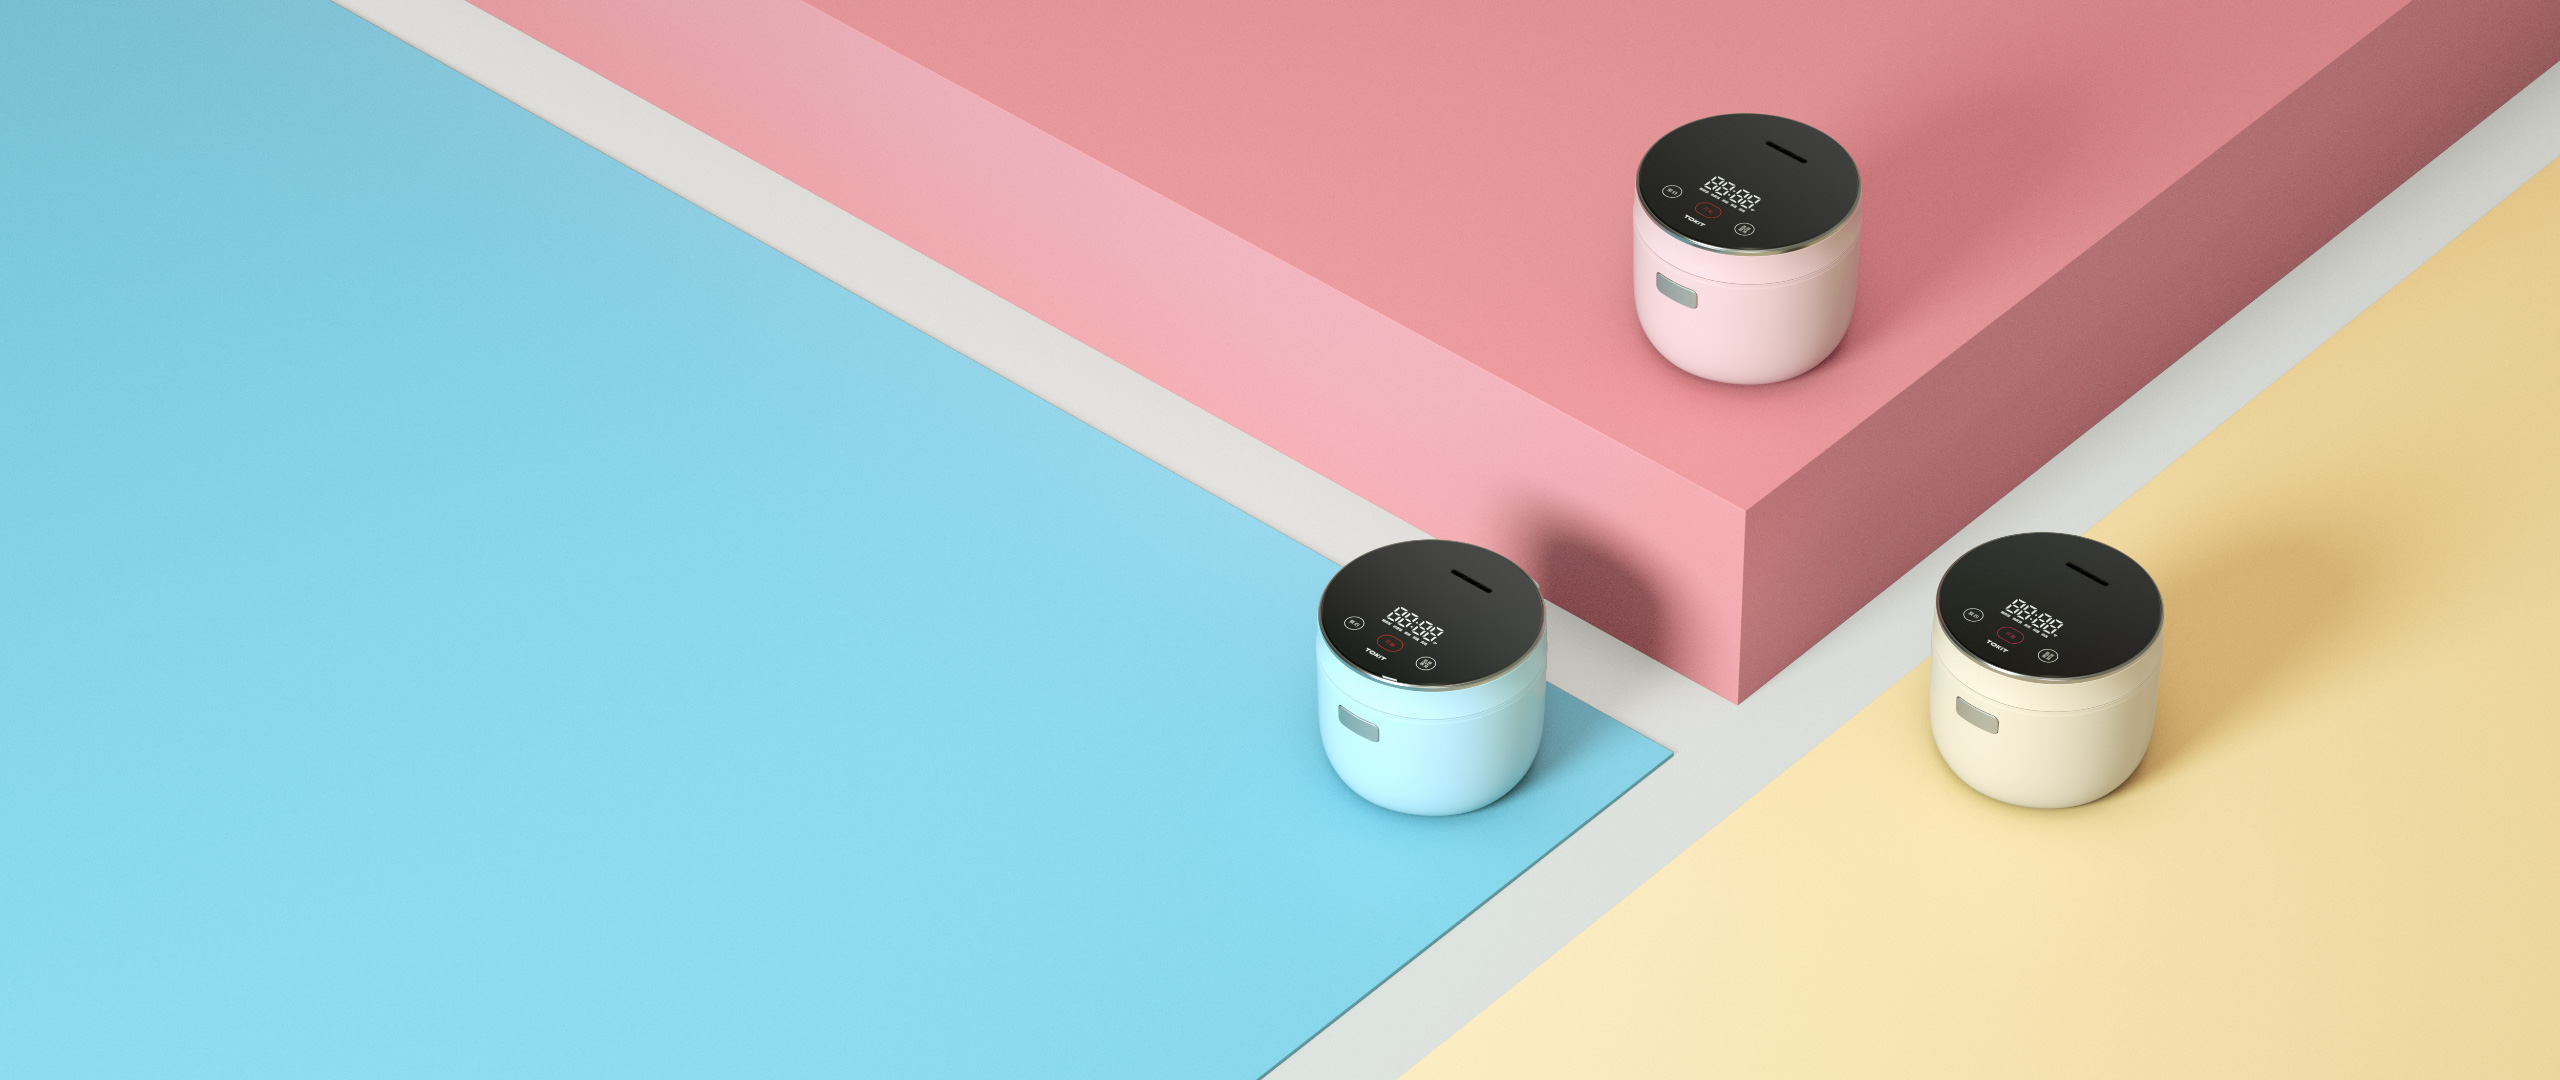 TOKIT Mini Smart Rice Cooker